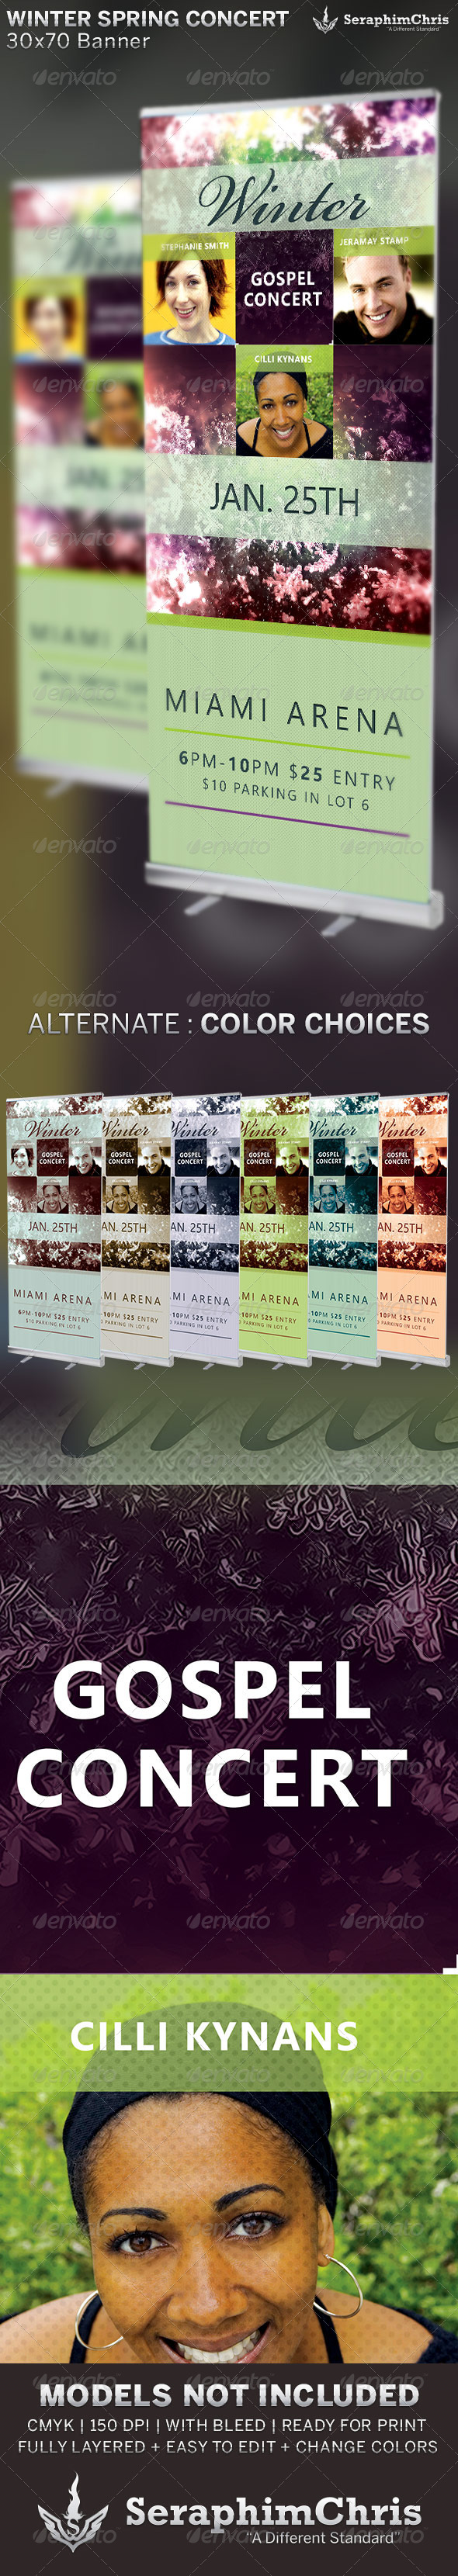 Winter Spring Concert Banner Template - Signage Print Templates